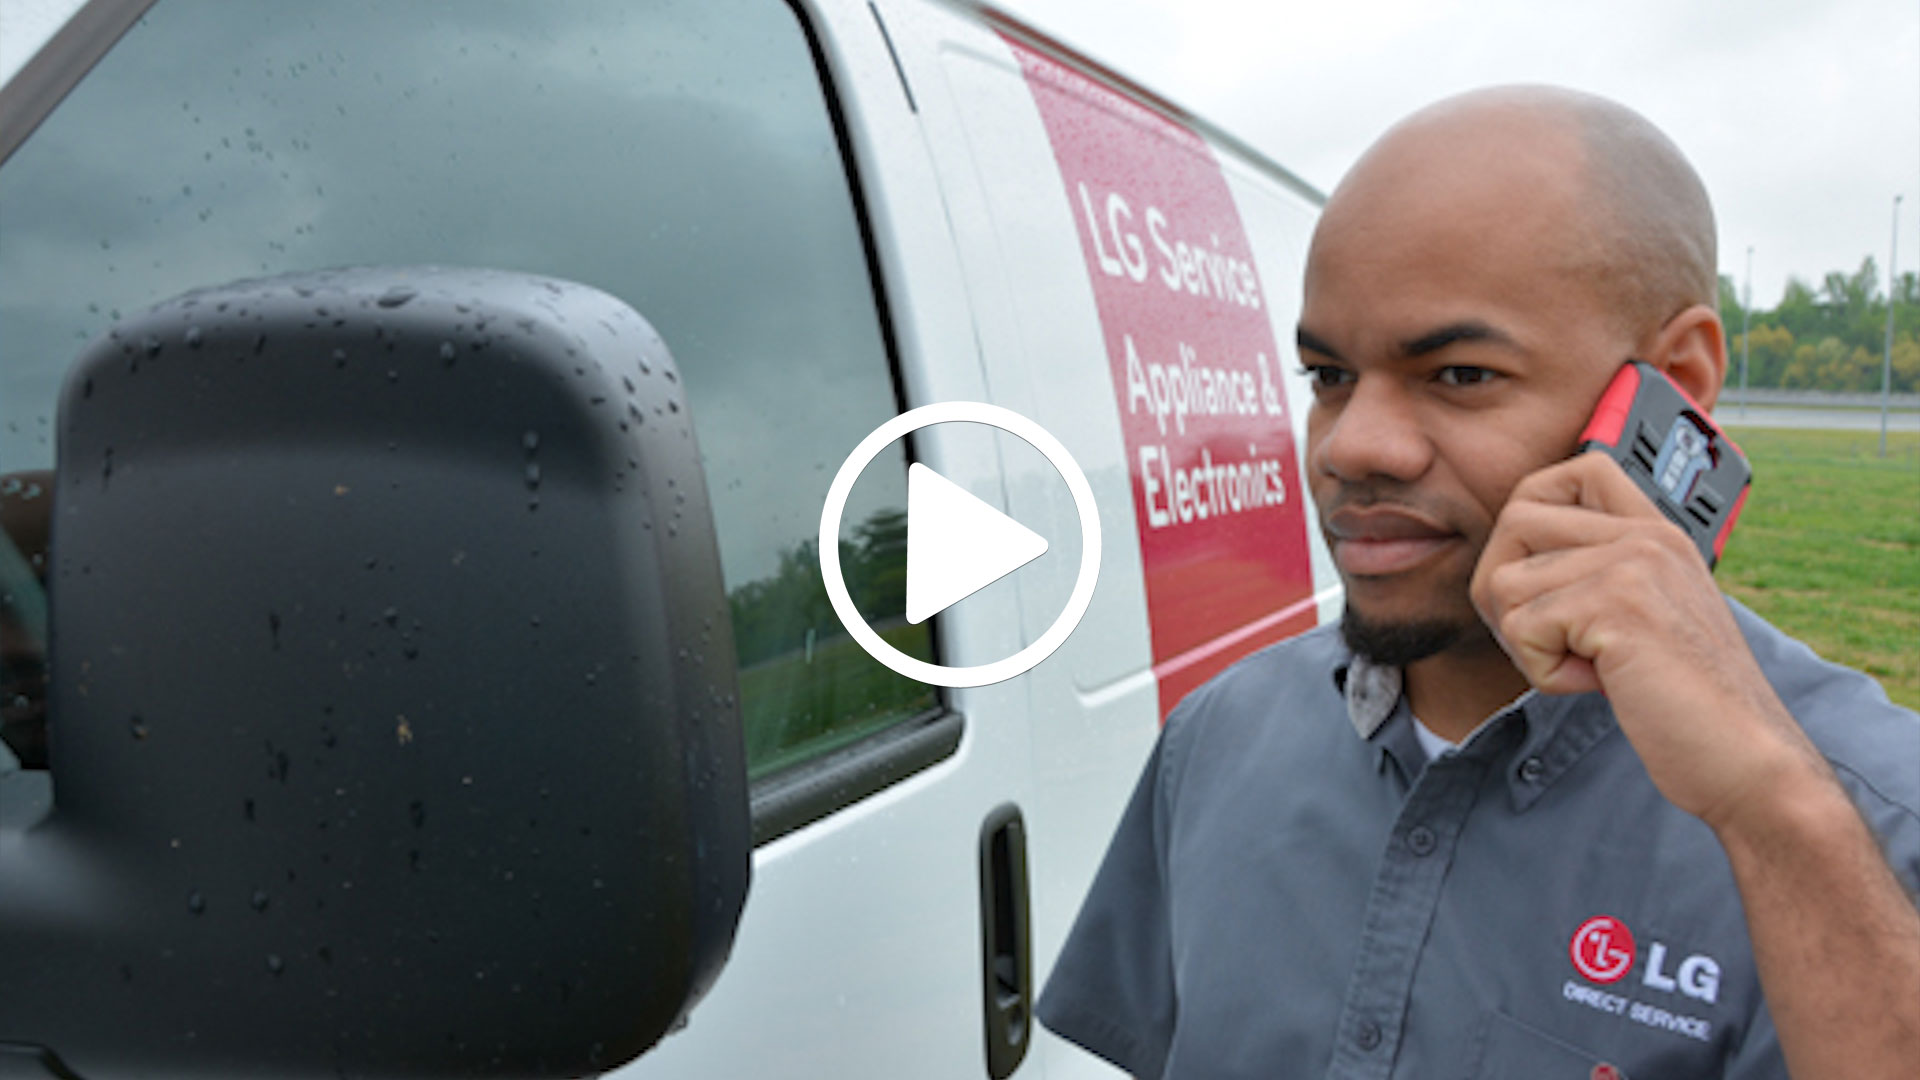 Watch our careers video for available job opening Field Service Technician in Mill Creek, WA